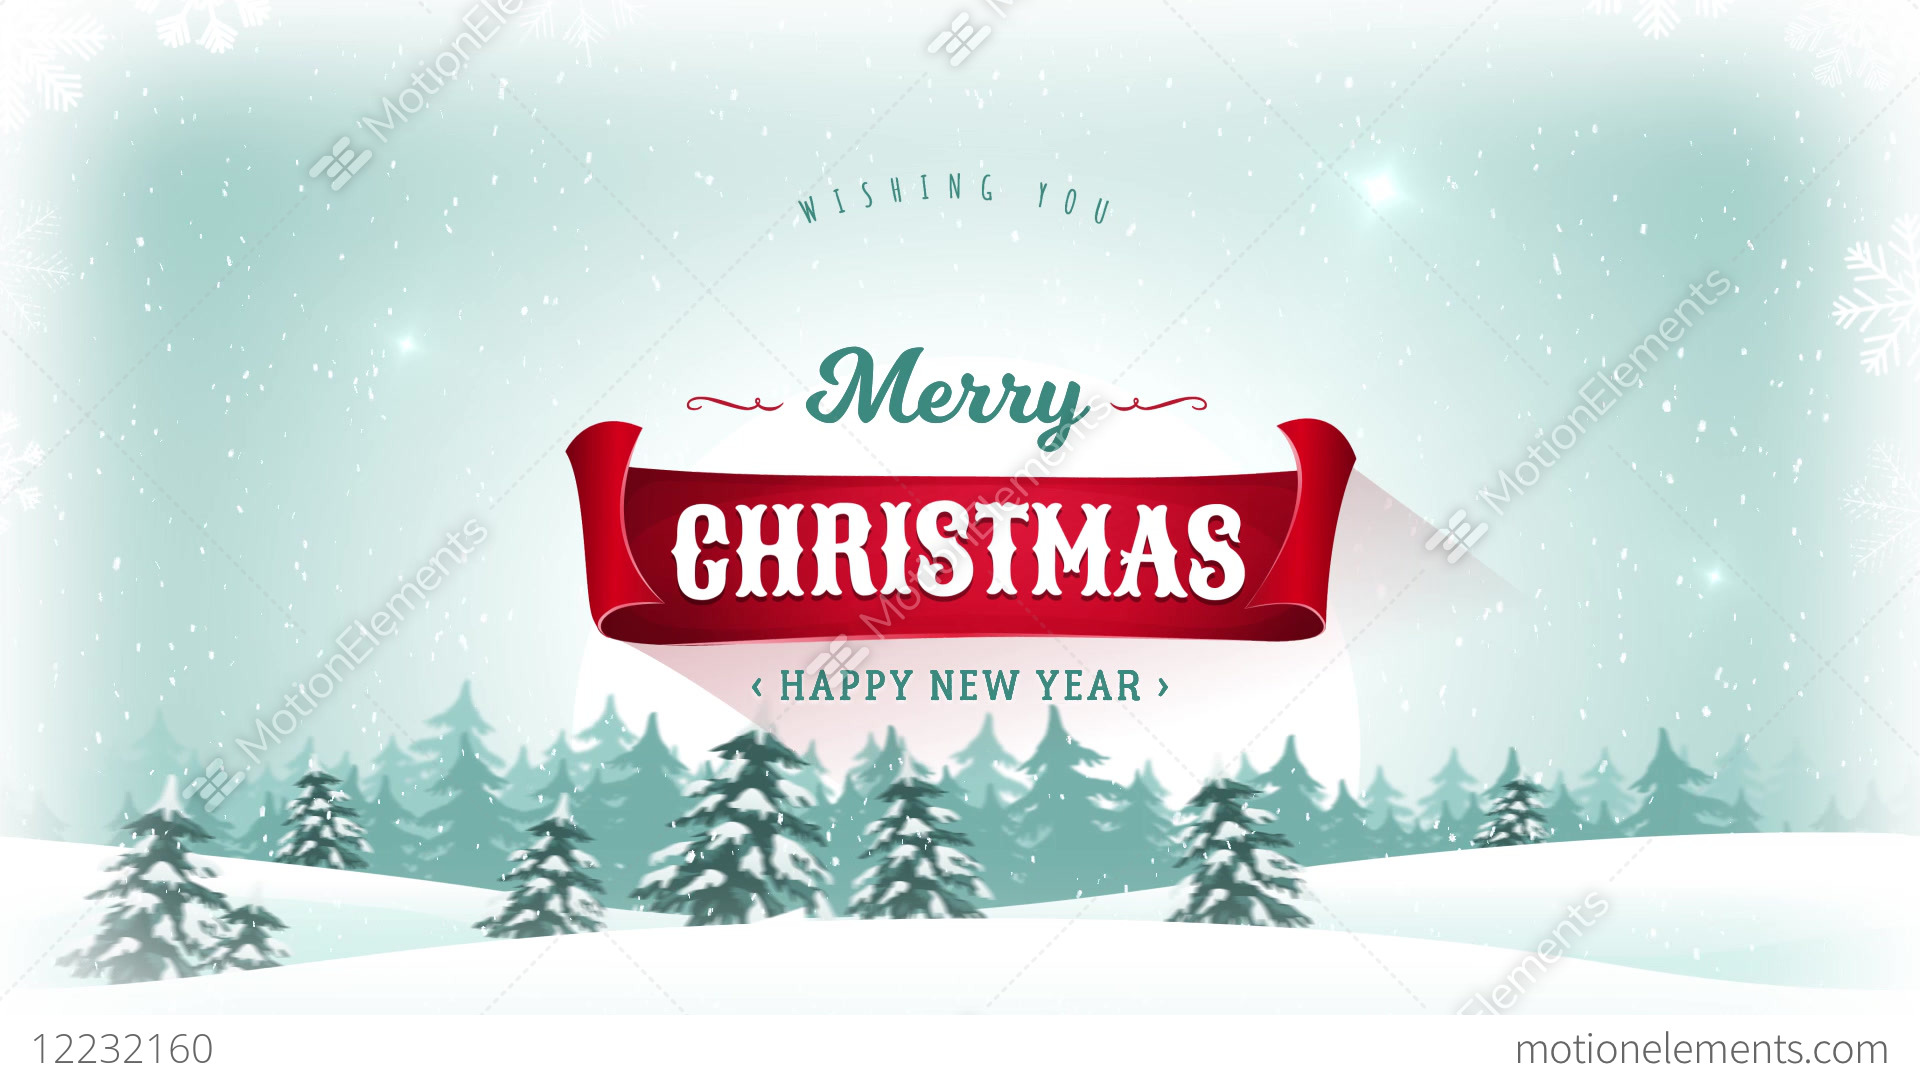 merry christmas happy new year background stock video footage